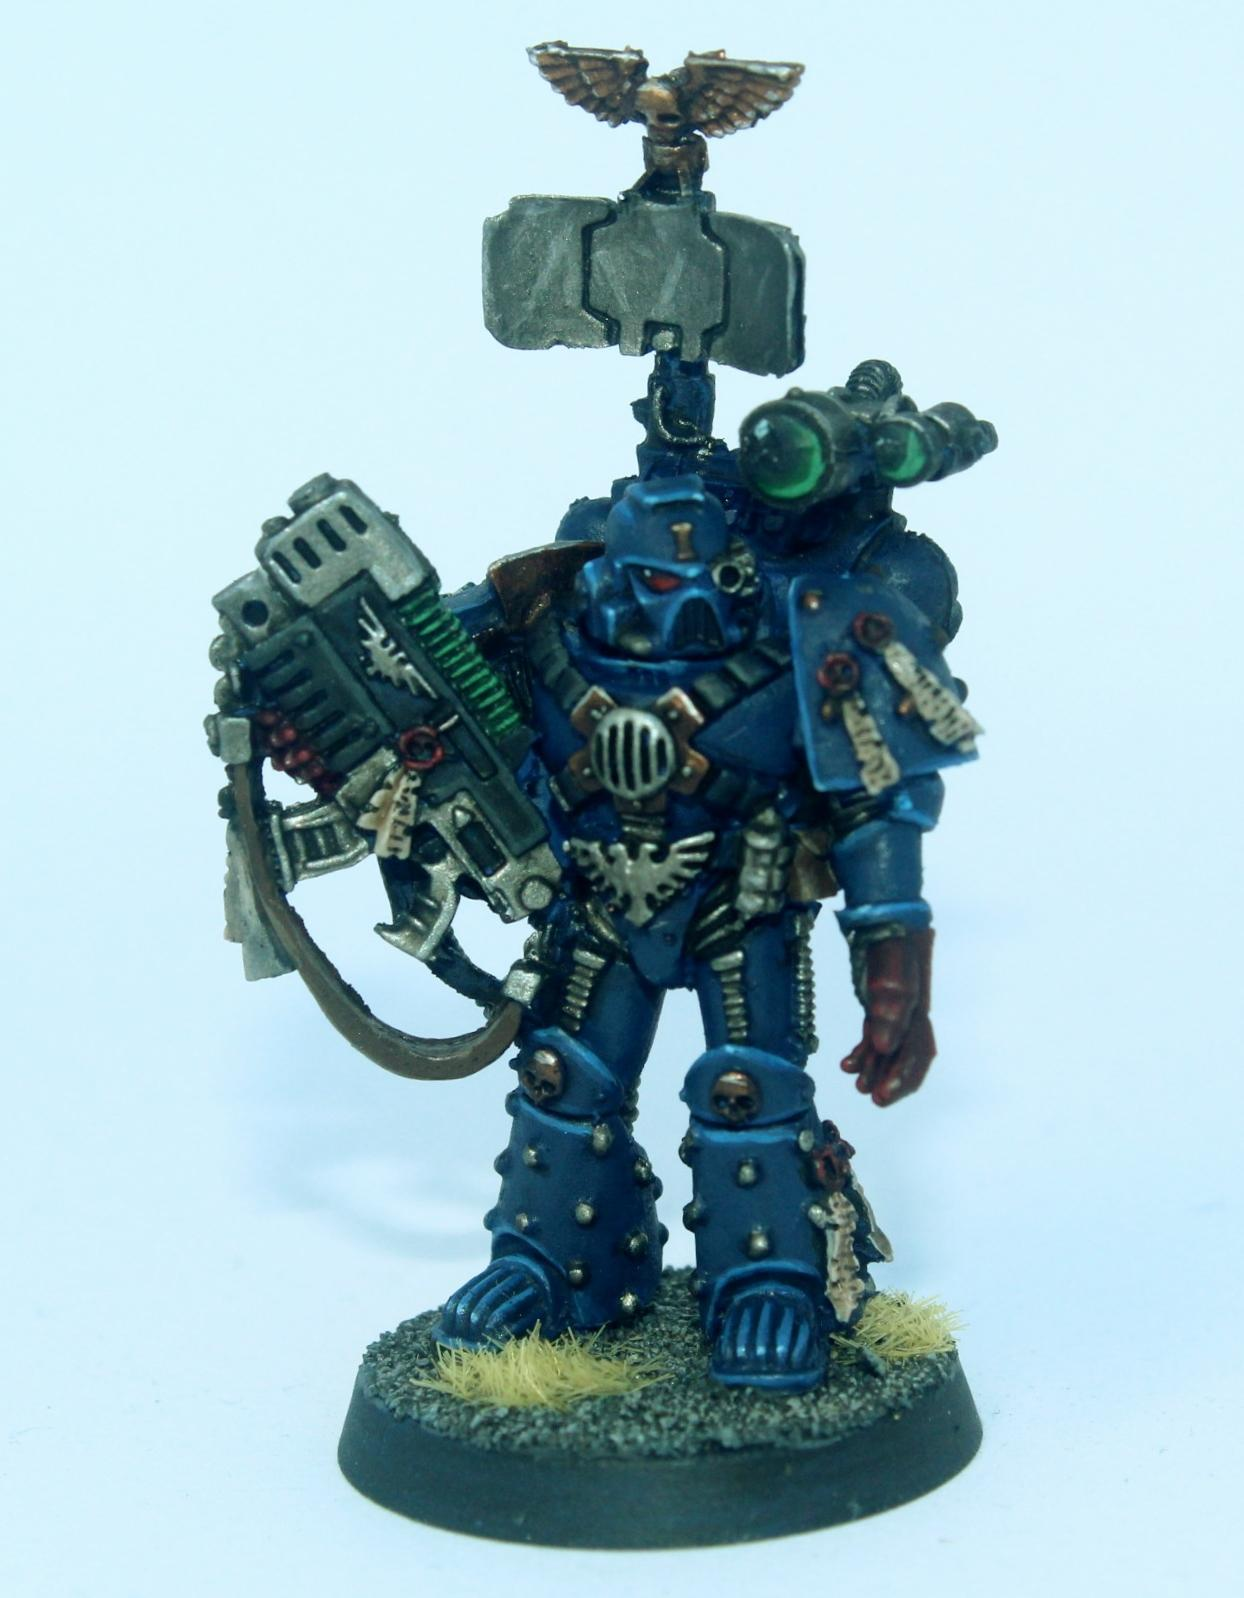 Bionic Eye, Blue, Combi Weapon, Conversion, Crimson Fists, Scanner Backpack, Space Marines, Warhammer 40,000